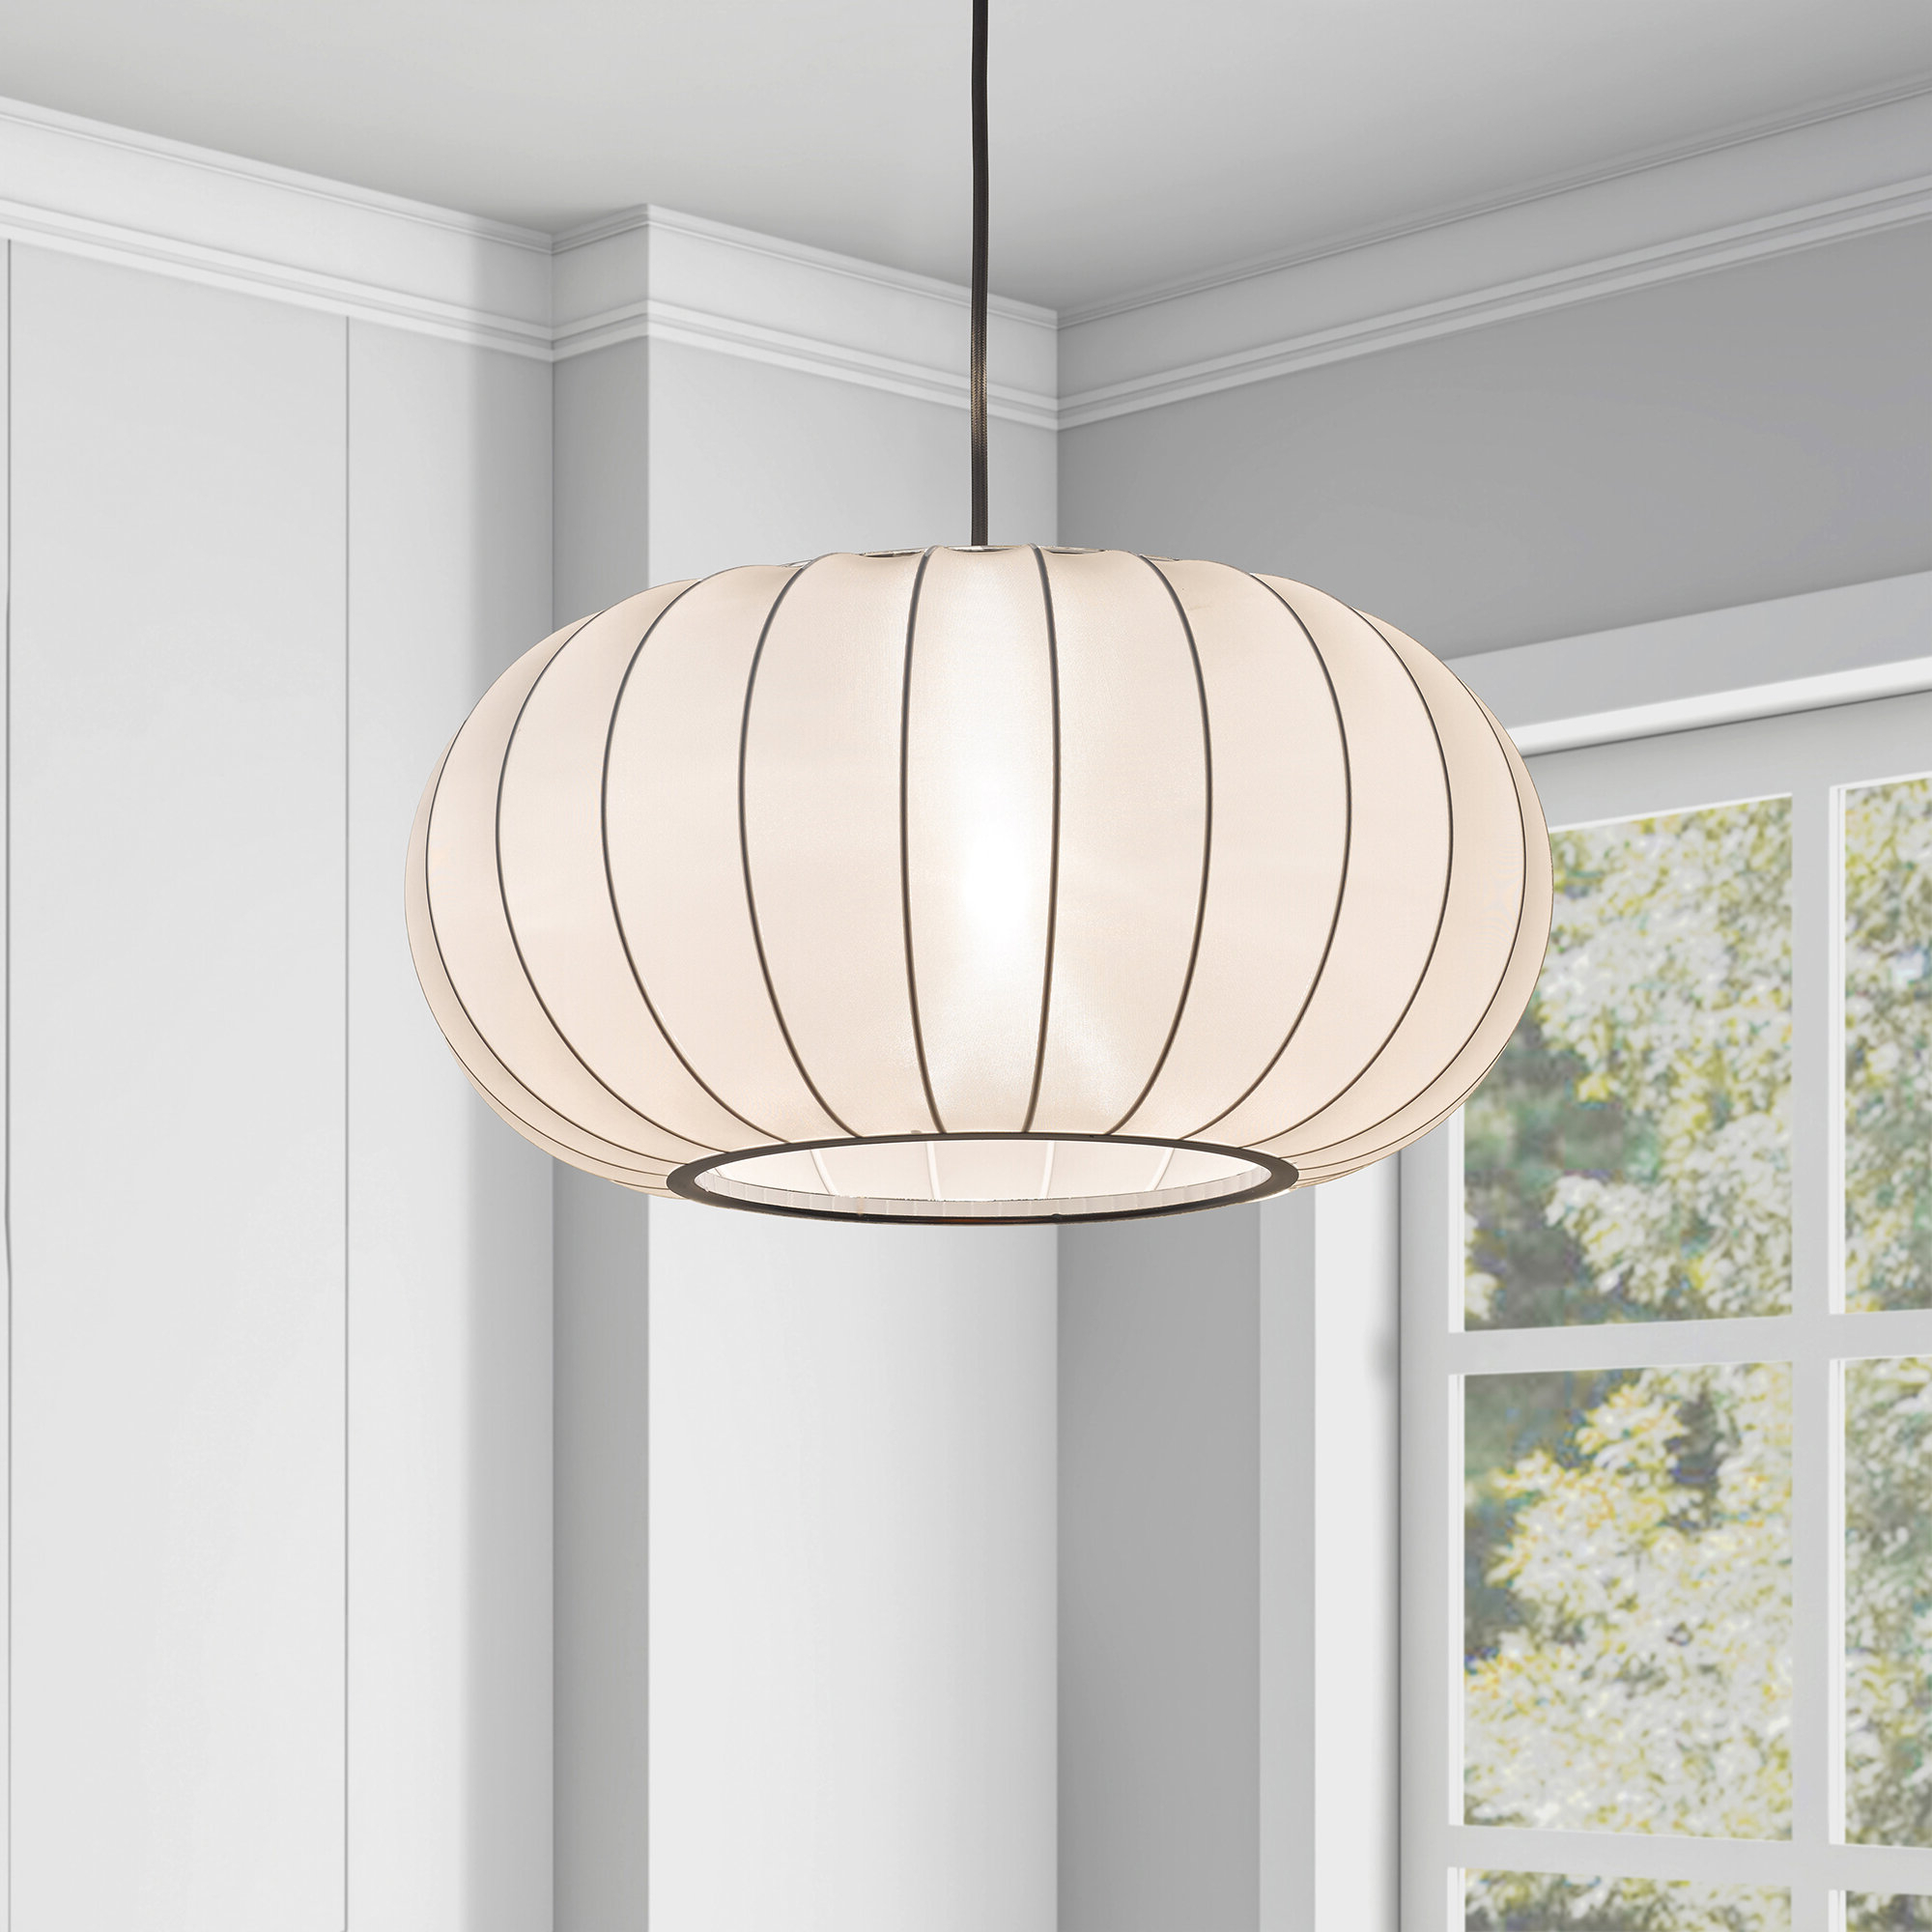 Langley Street Alfredo 3 Light Geometric Chandelier With Favorite Melora 1 Light Single Geometric Pendants (View 7 of 20)